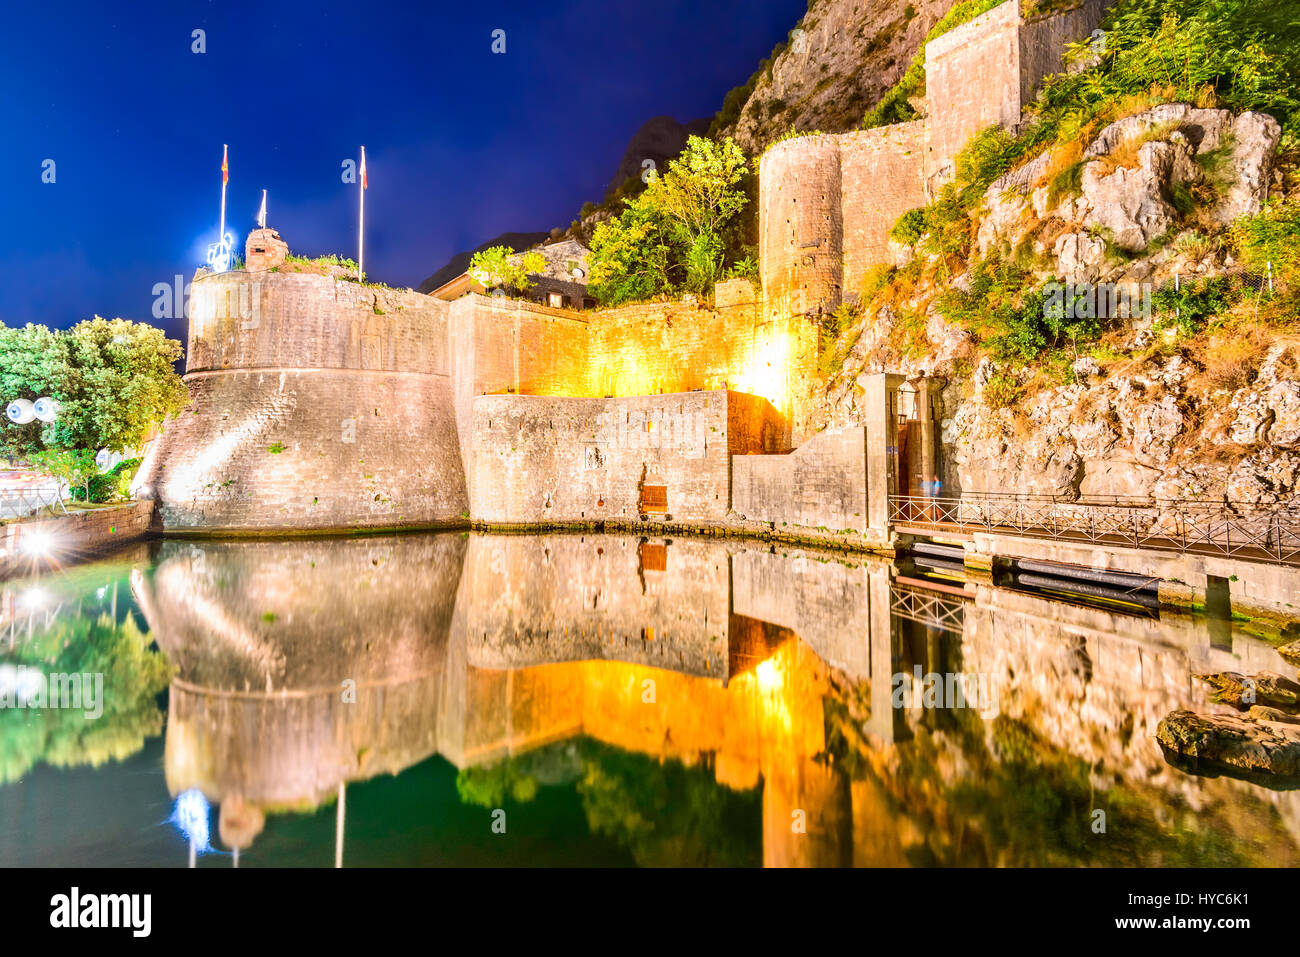 Bay of Kotor, Montenegro. Venetian fortress of Kotor and Scurda river. Tower and wall, mountain Lovcen at the background. Stock Photo